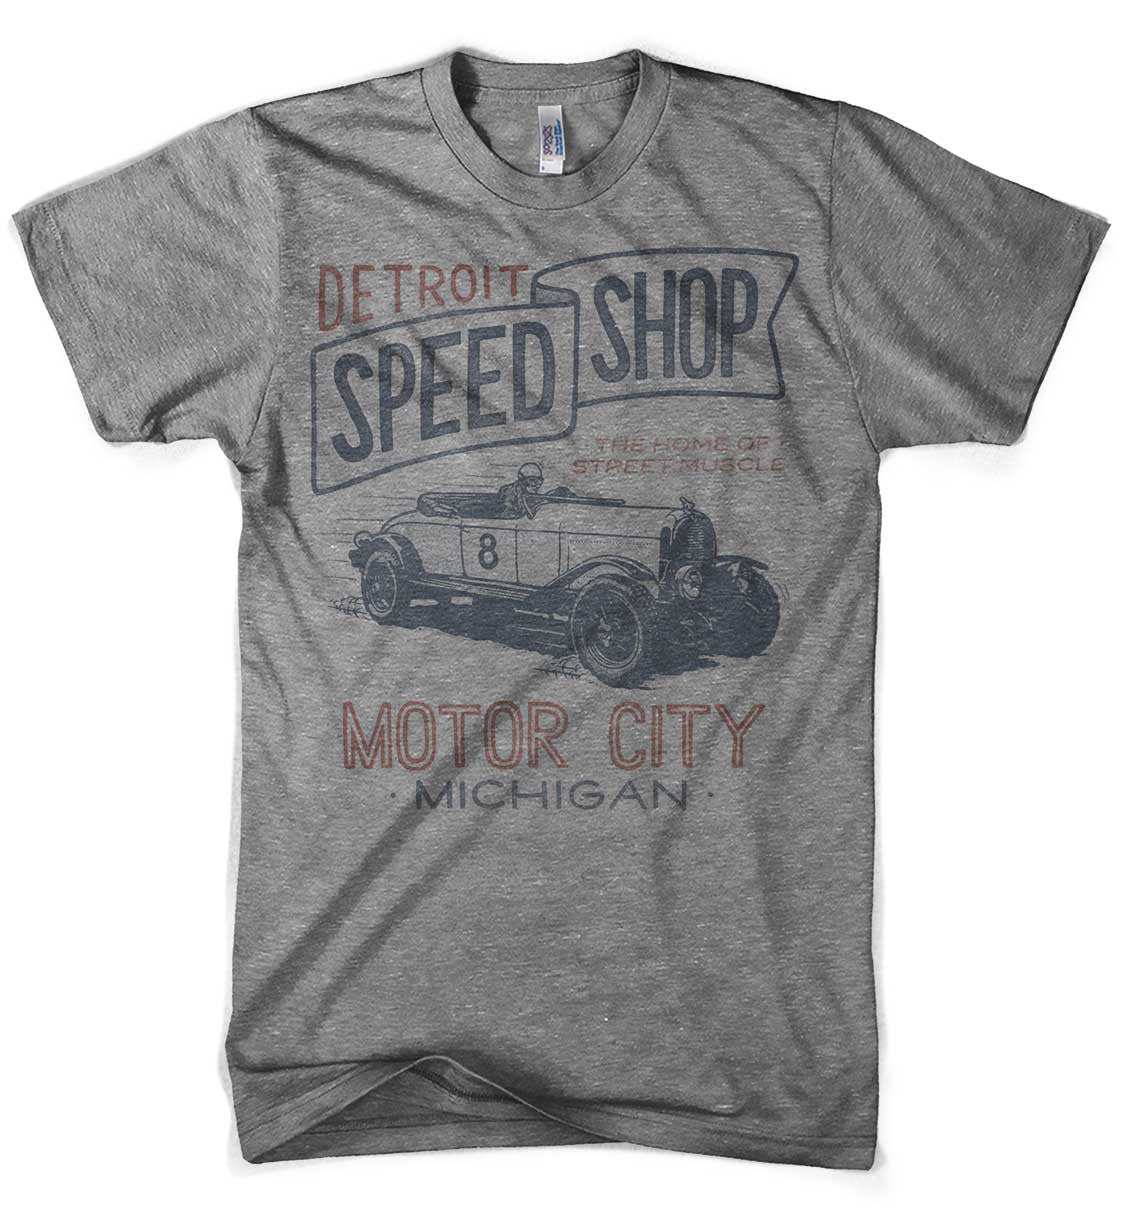 Mens Triblend Vintage Detroit Speed Shop T-shirt (Grey) | Detroit Shirt Co.